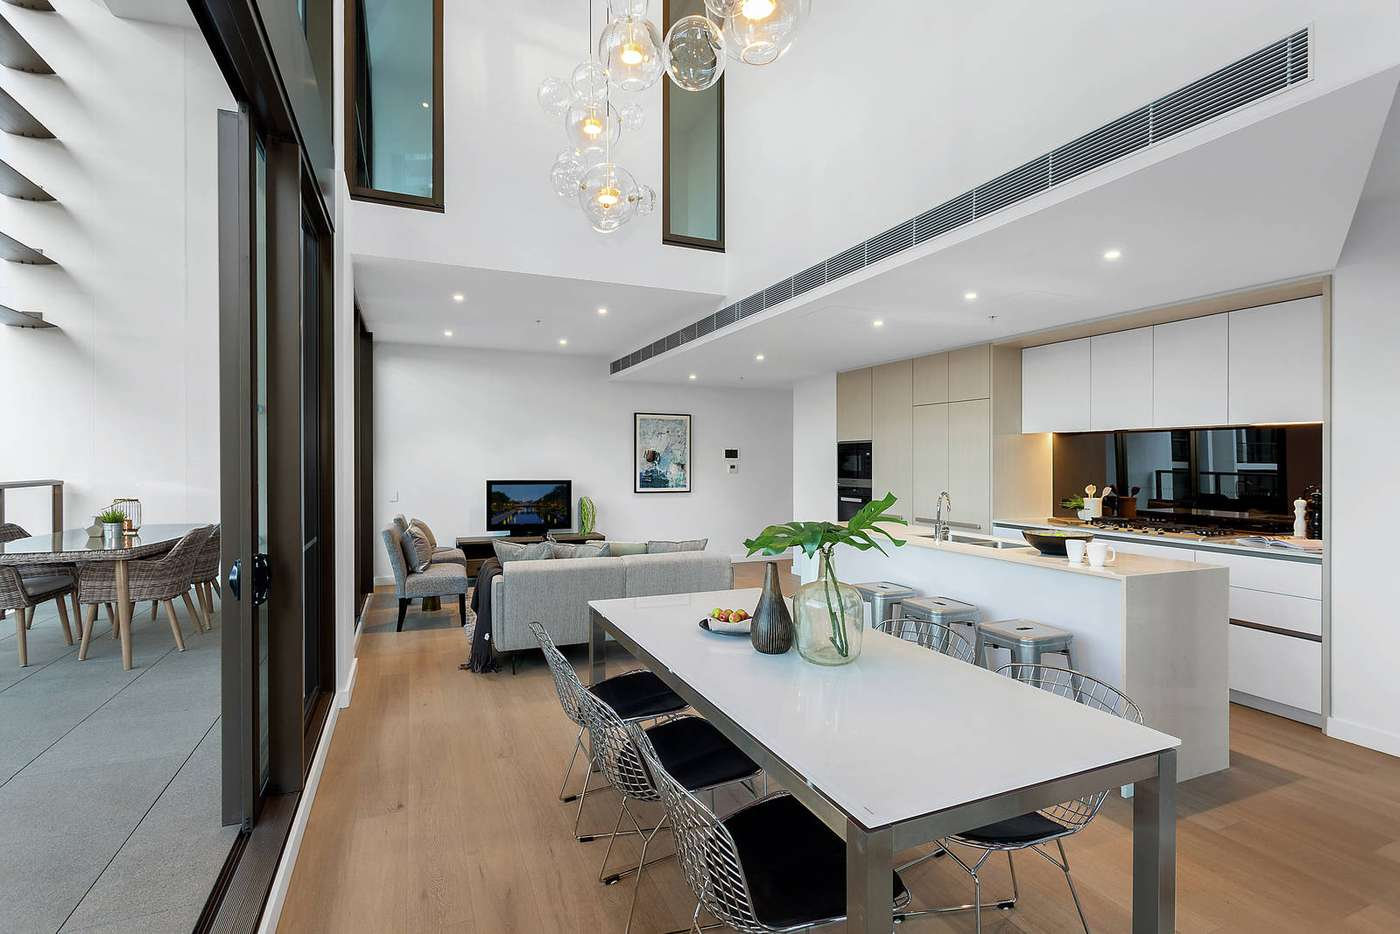 Main view of Homely apartment listing, 801/70 Tumbalong Boulevard, Sydney NSW 2000